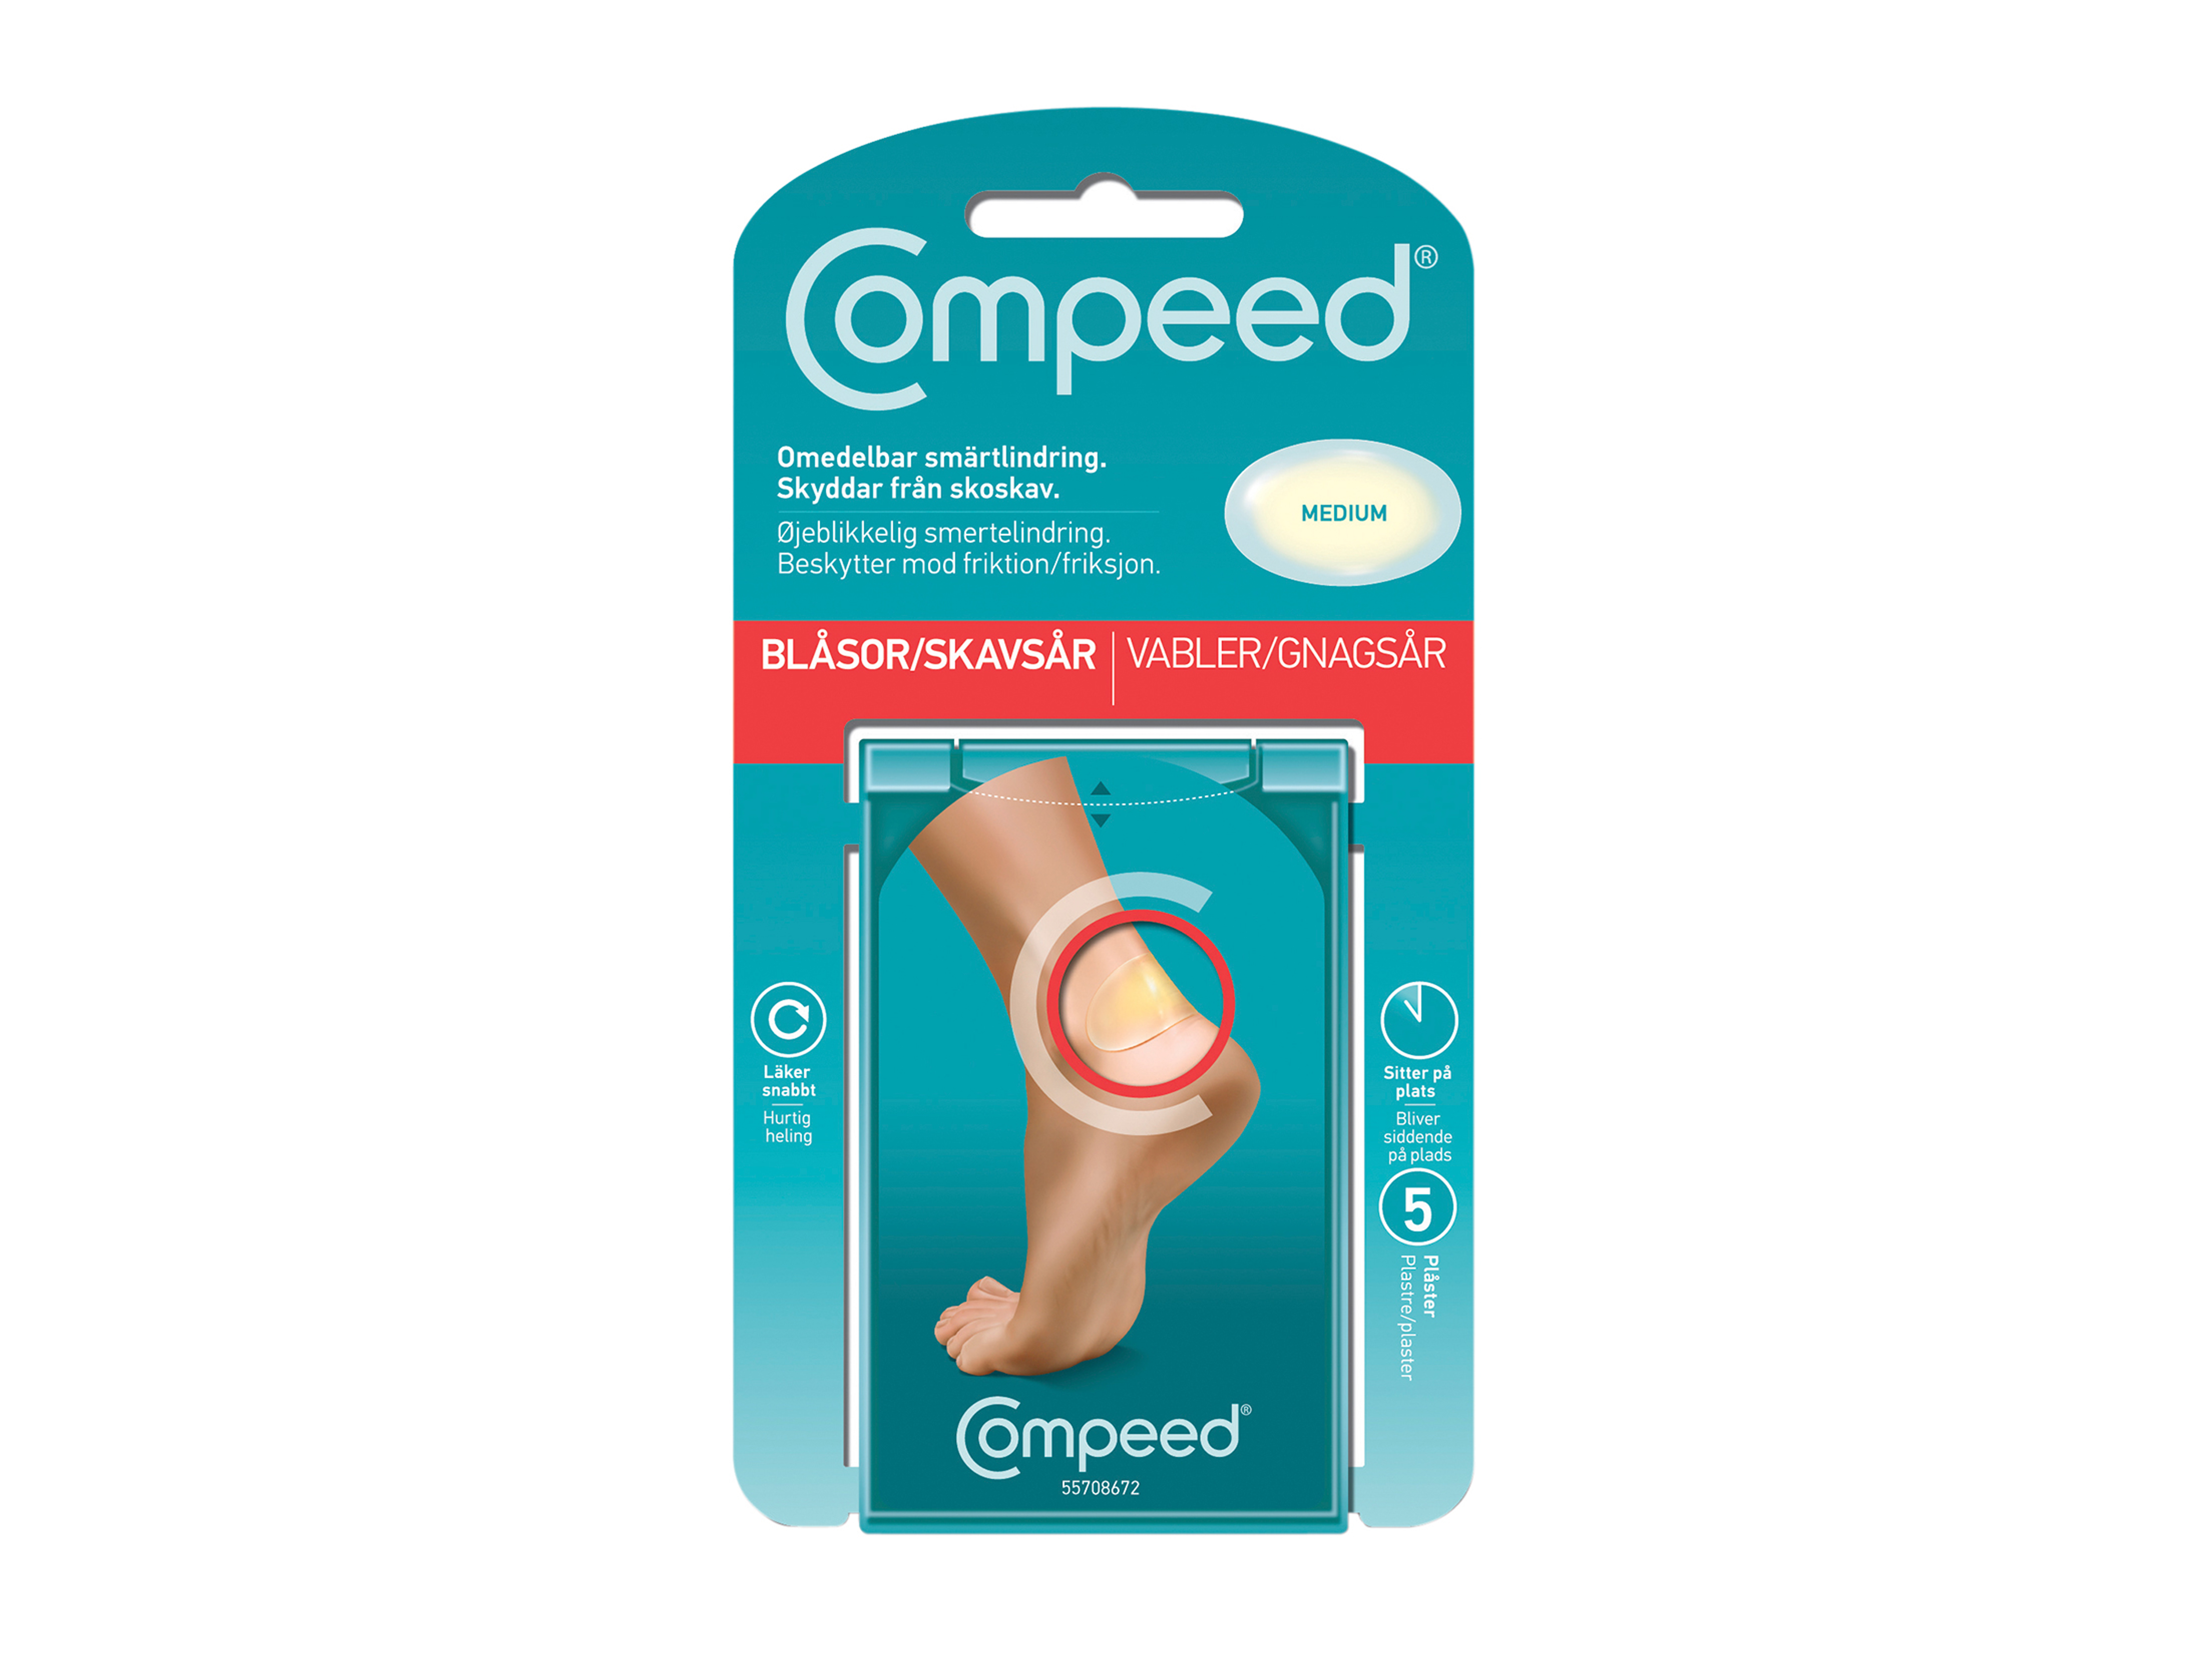 Compeed Gnagsår Medium, 5 stk.